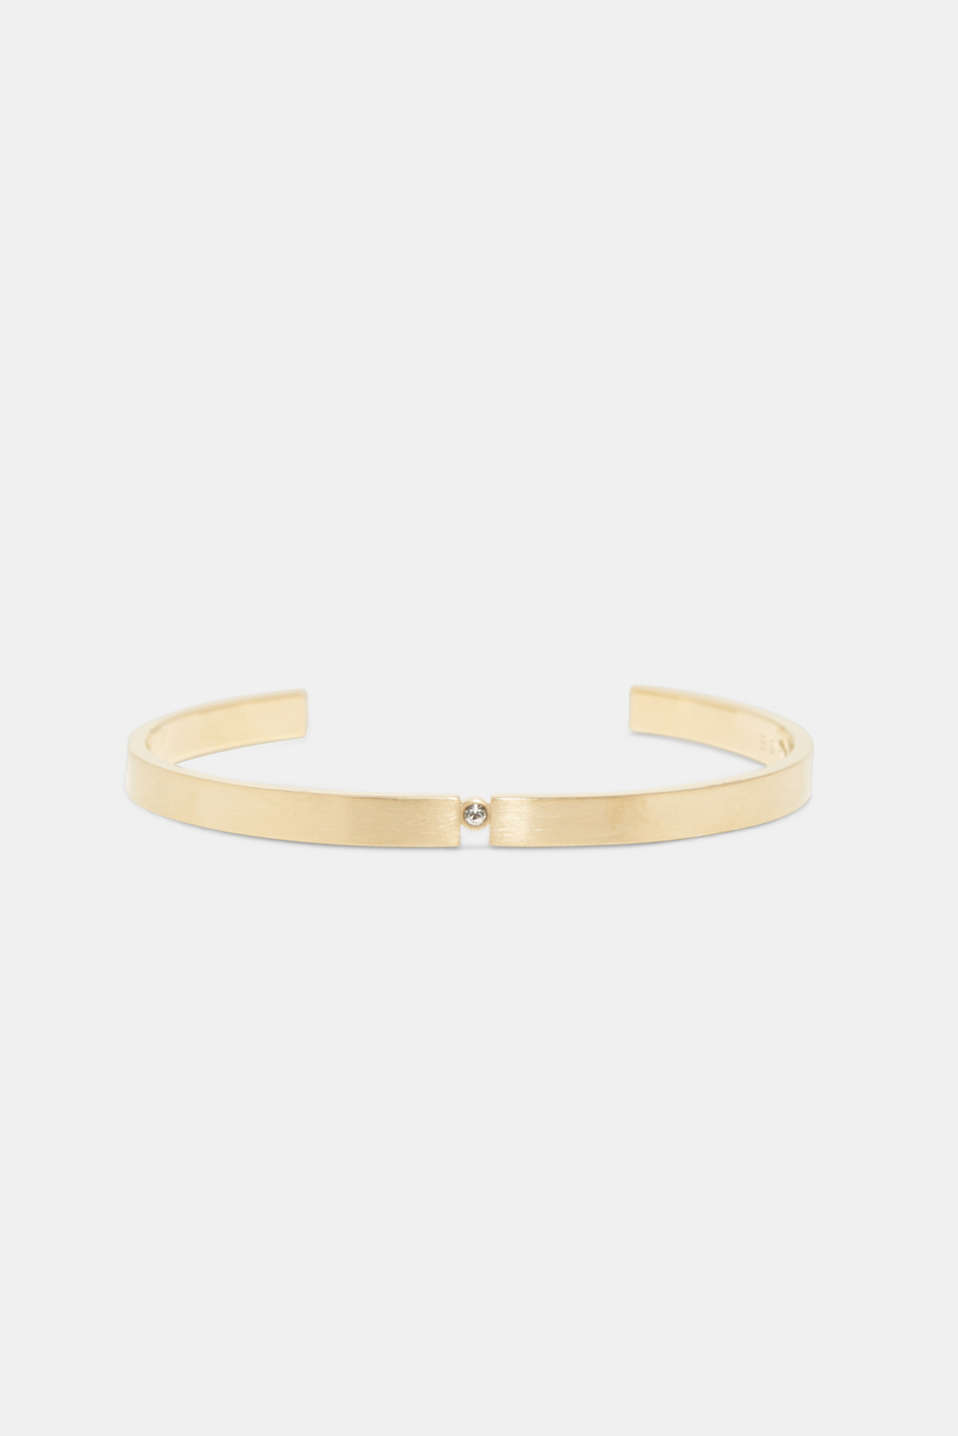 Esprit - Open bangle with zirconia, in stainless steel